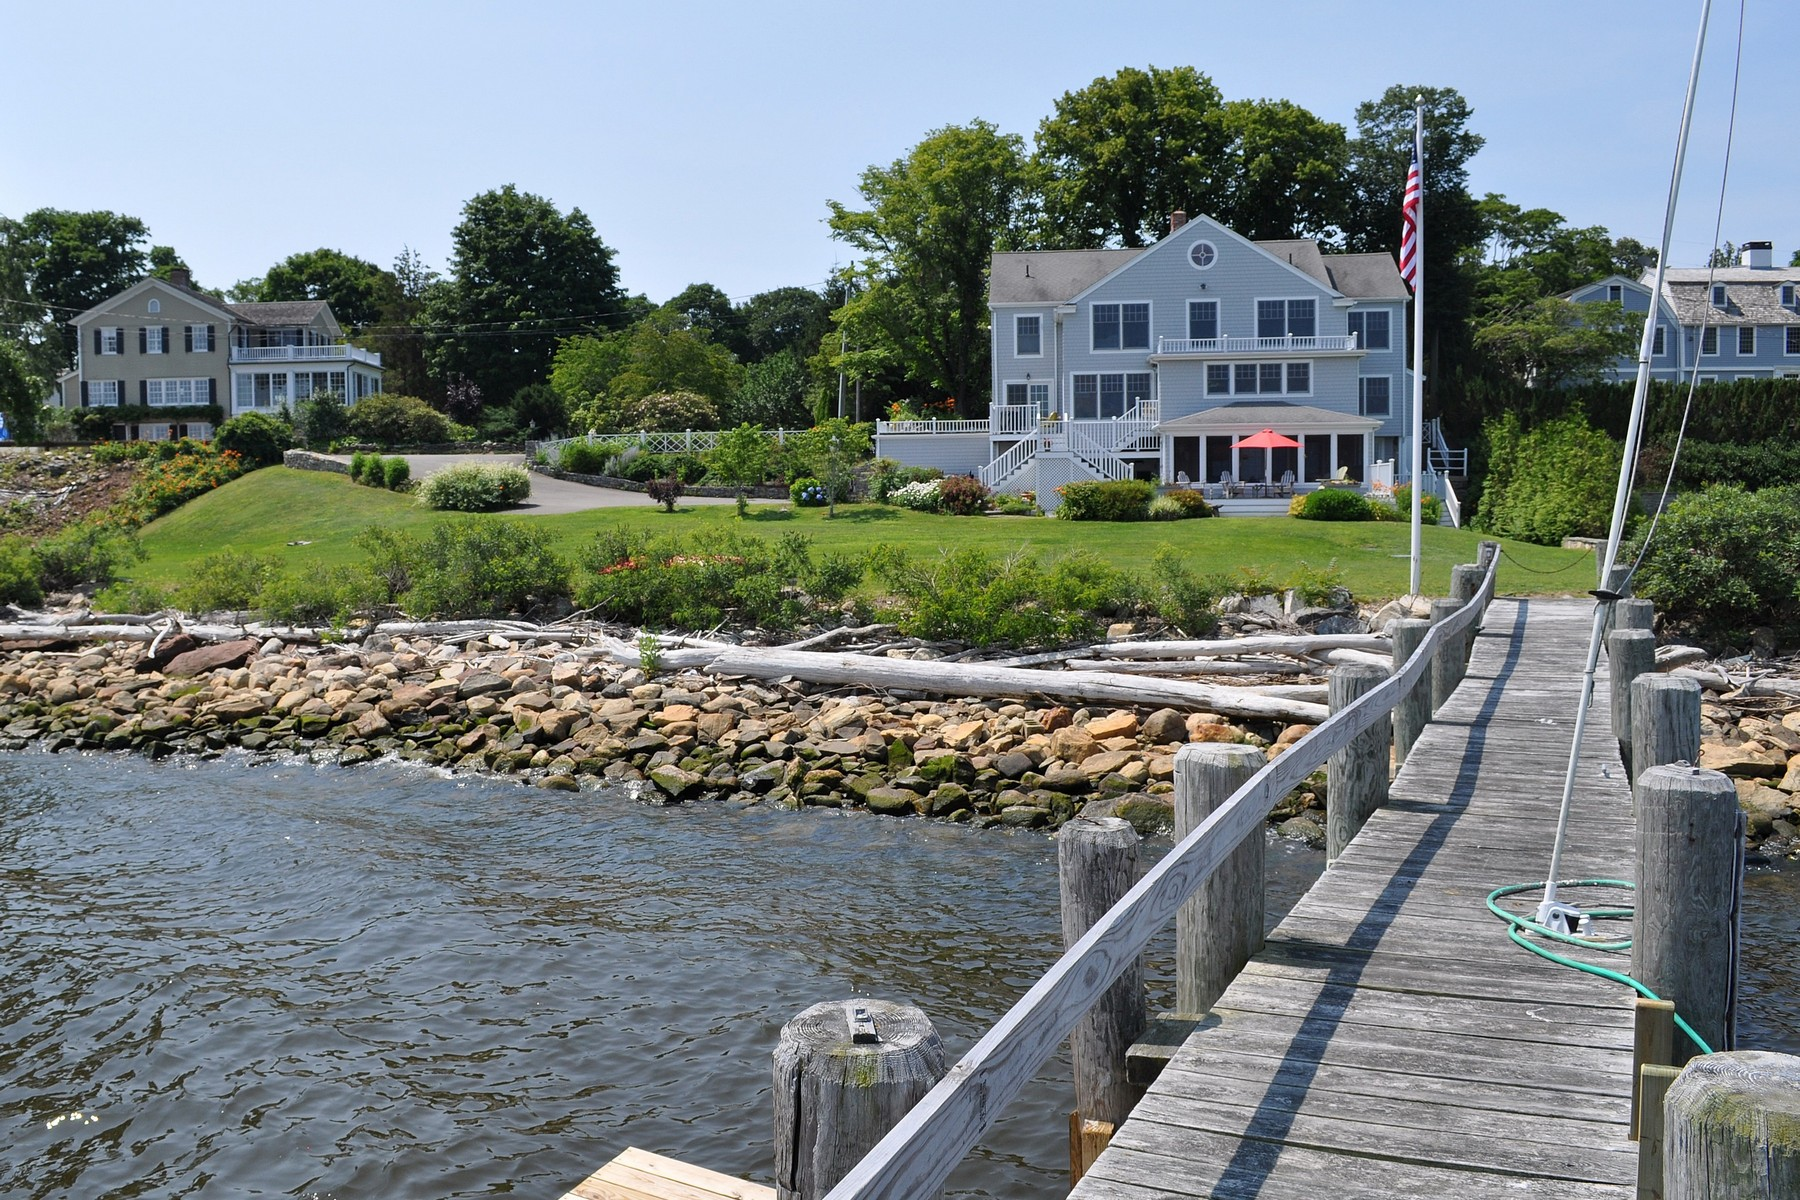 Villa per Vendita alle ore Secluded Harbor of North Cove 201 North Cove Rd Old Saybrook, Connecticut 06475 Stati Uniti